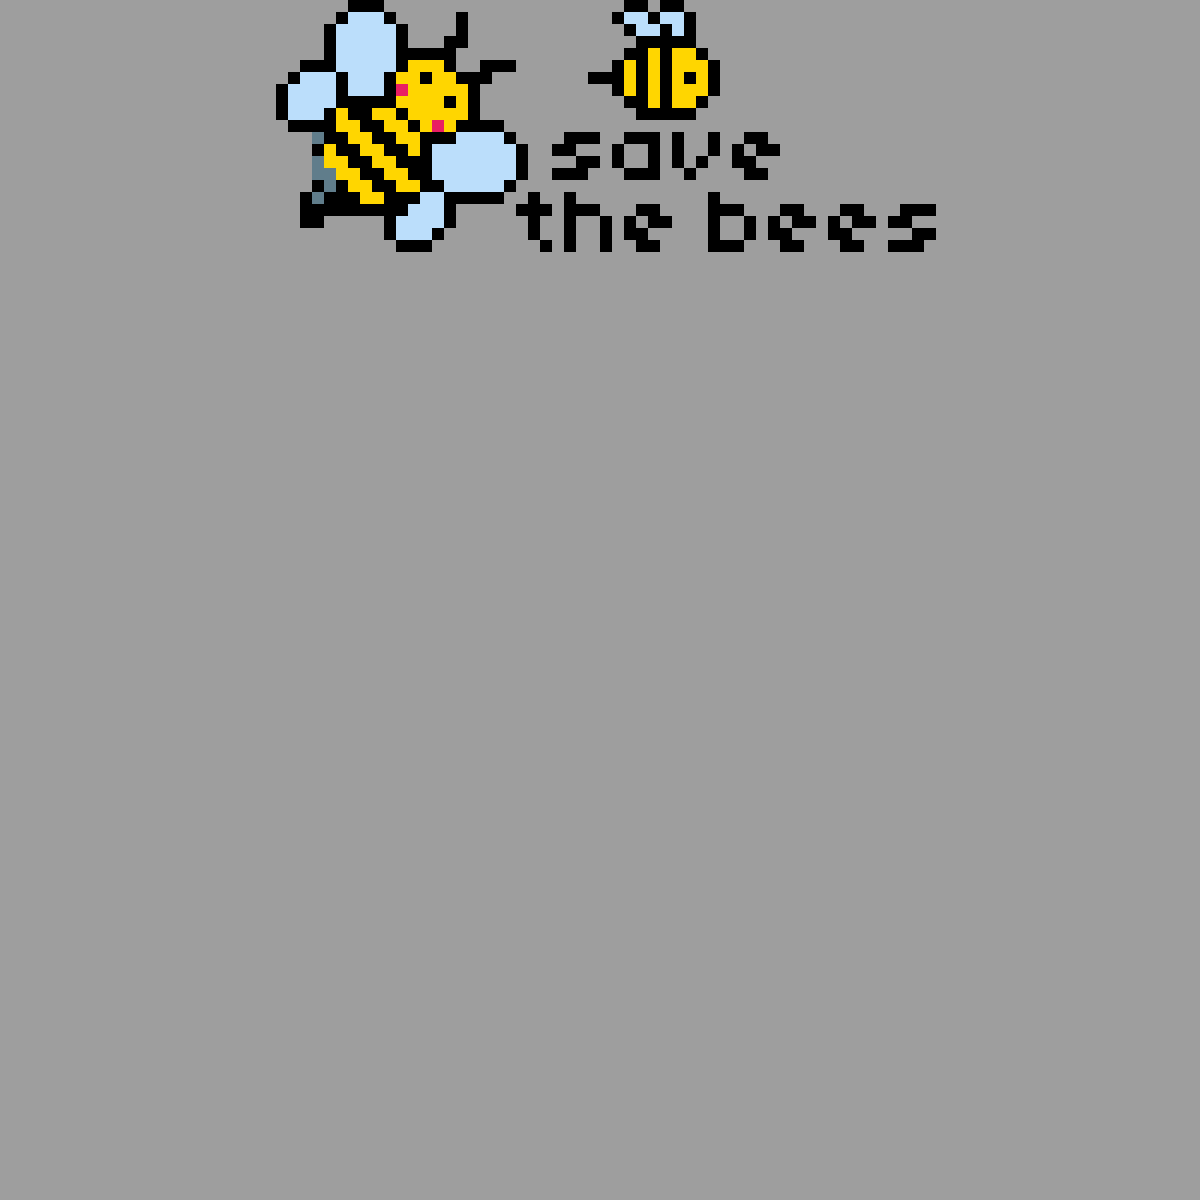 main-image-BEES BEES BEES  by FruitBowl95